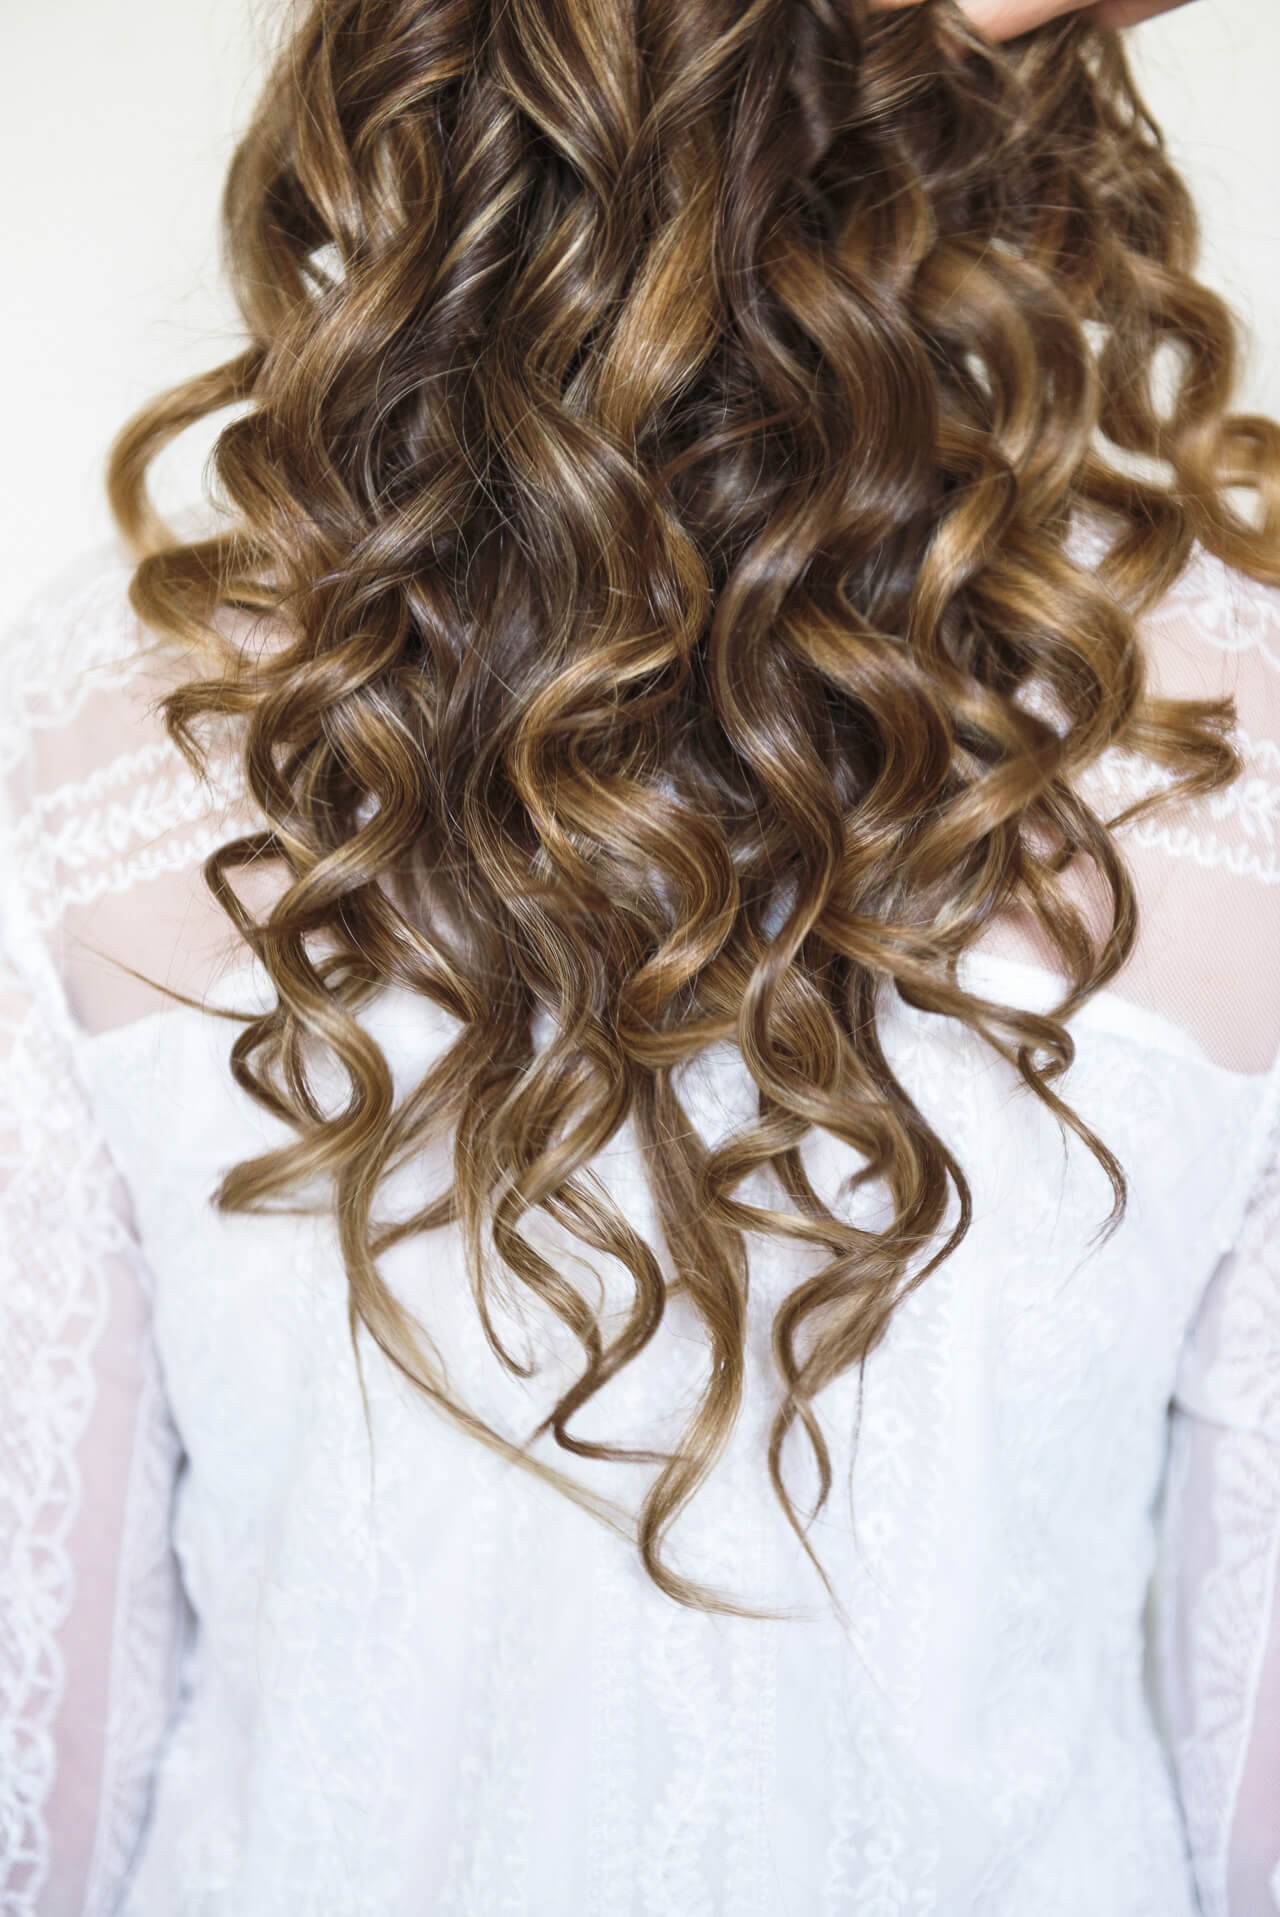 lots of spiral curls are great for the holidays